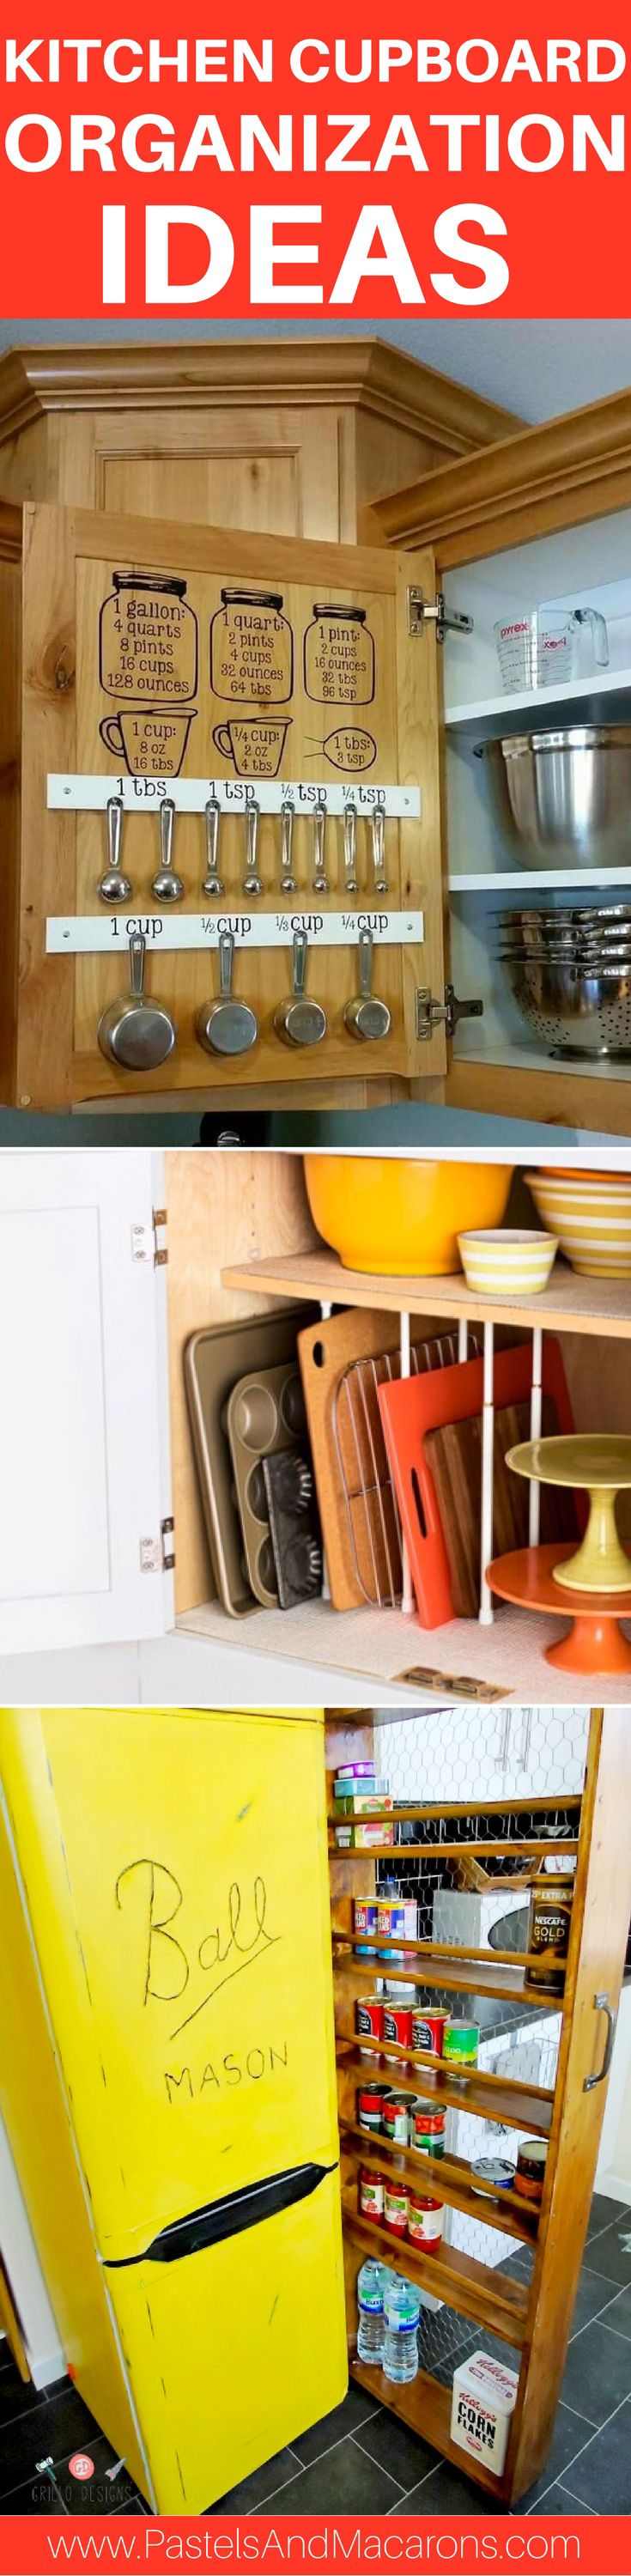 Kitchen Cupboard Organizing